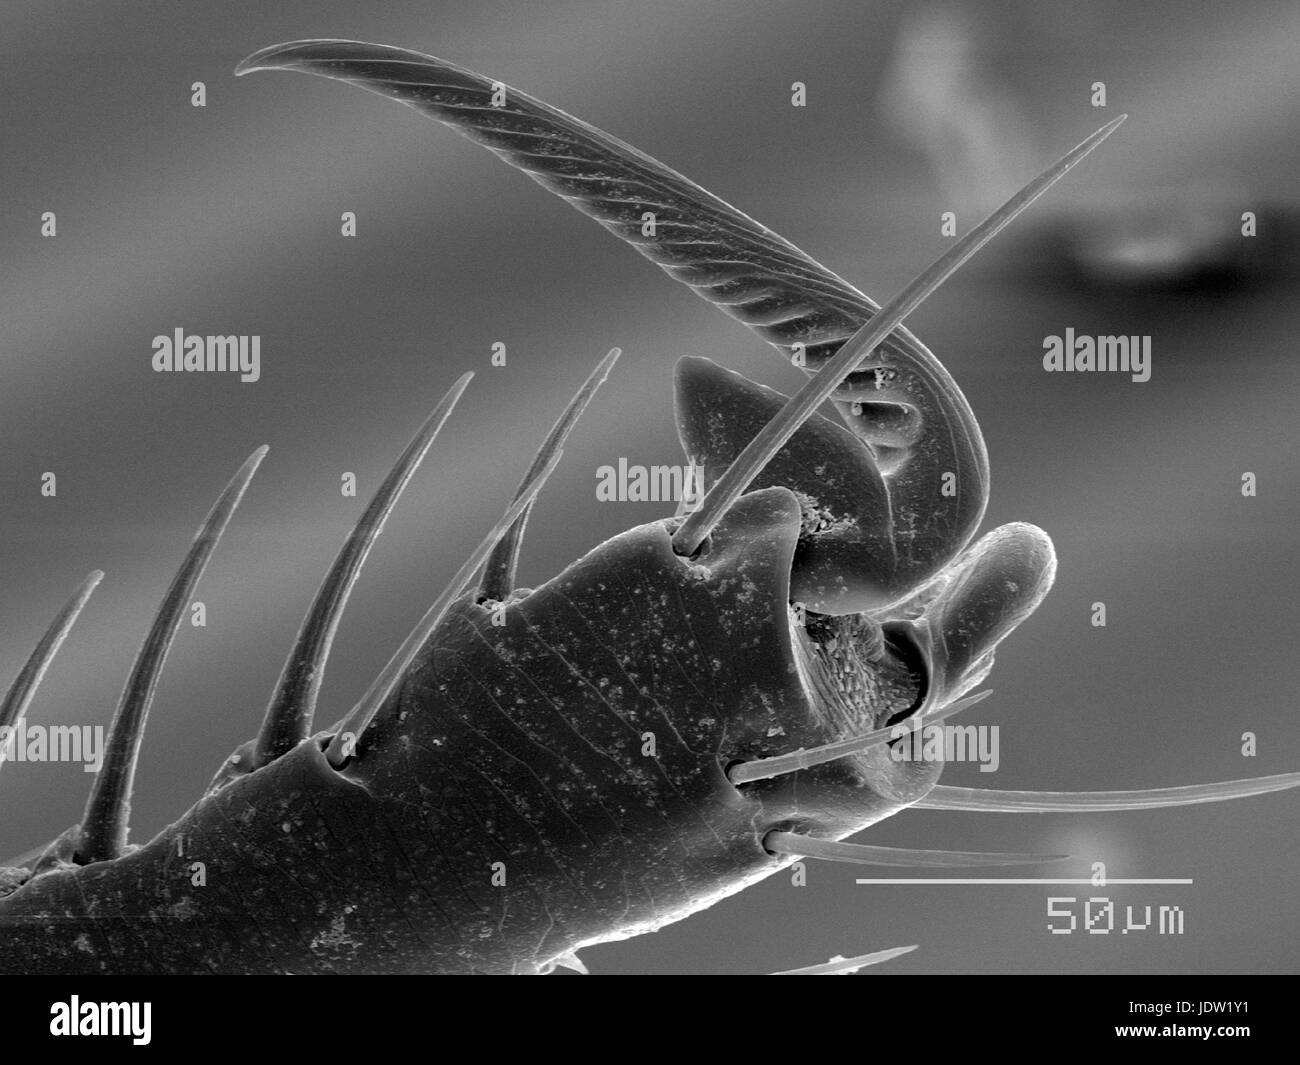 Magnified view of flea tarsus - Stock Image